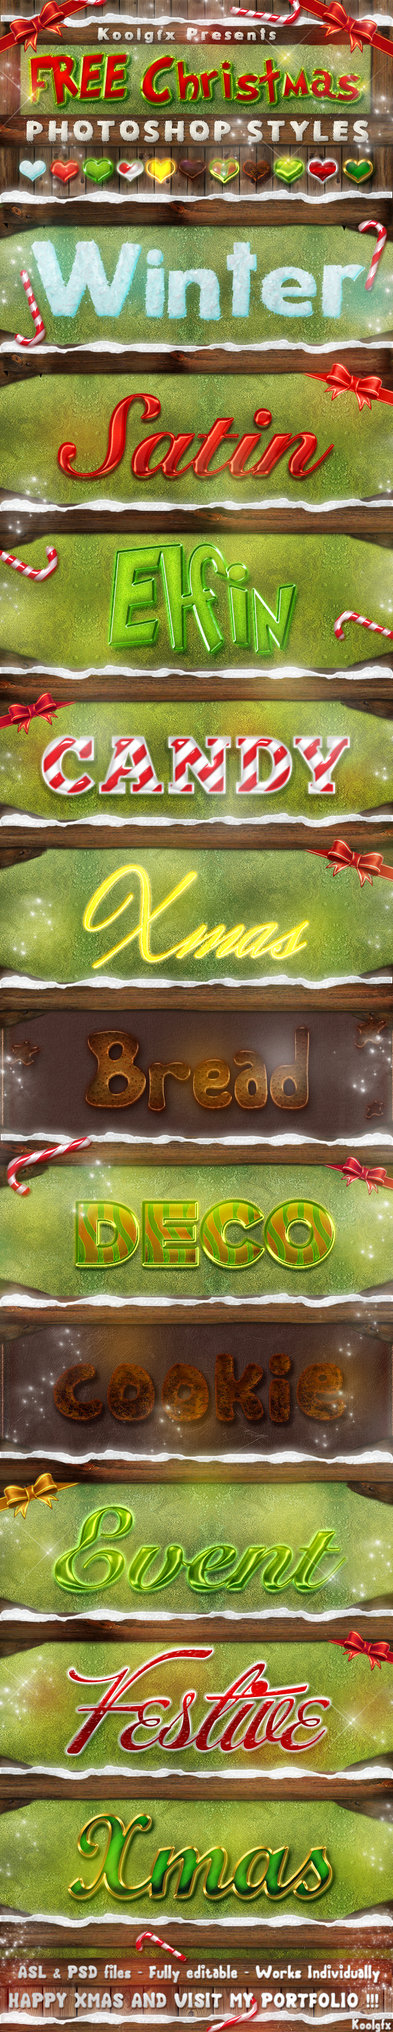 FREE Christmas Photoshop Styles - Text Effects